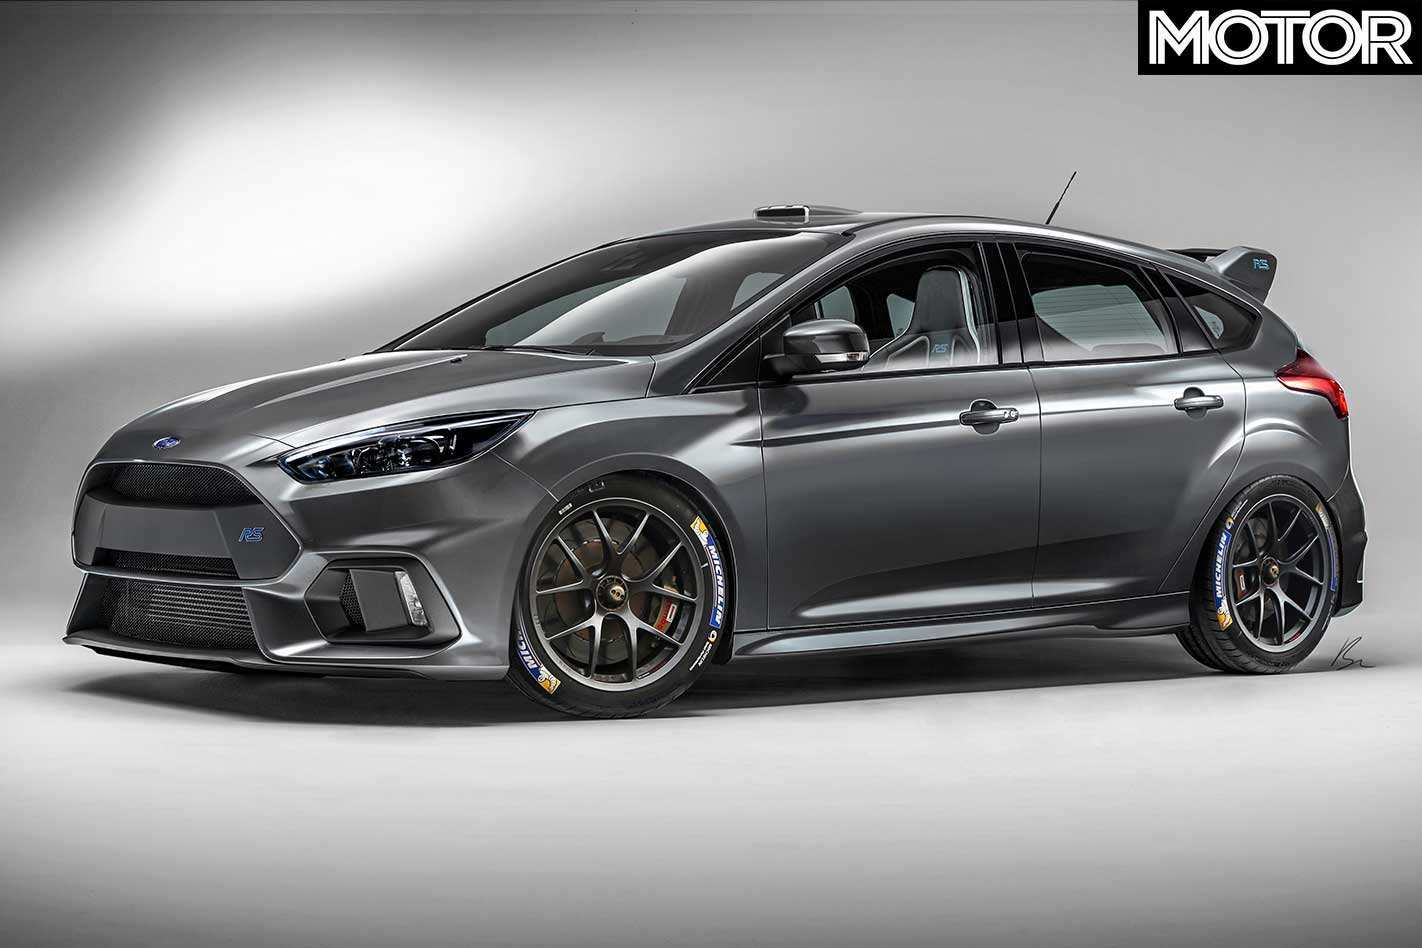 76 All New 2020 Ford Focus Rs St Exterior And Interior